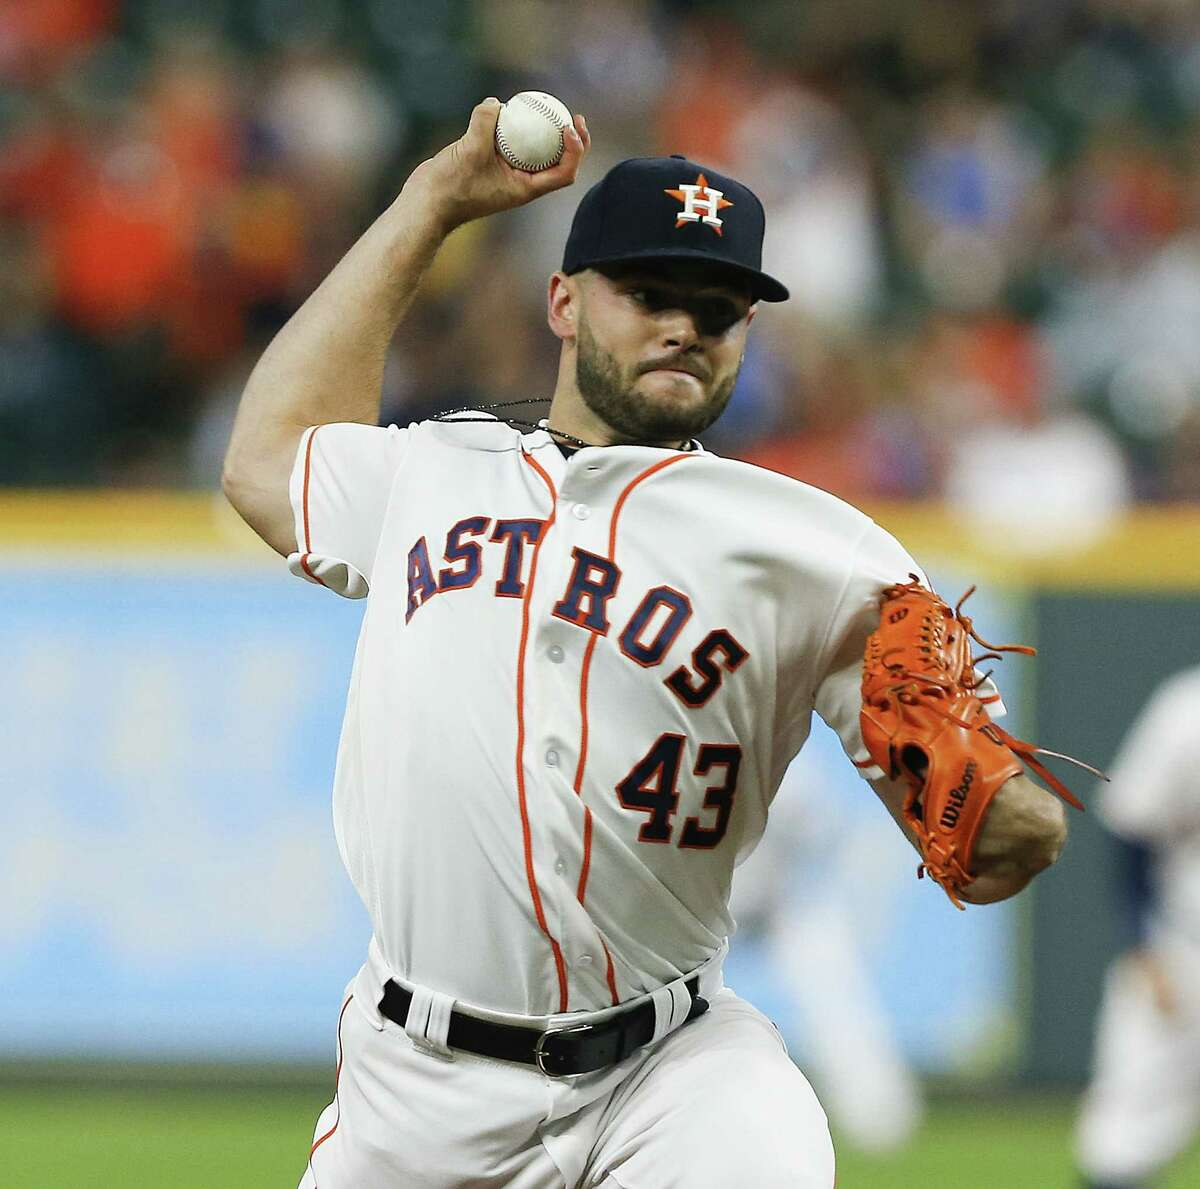 HOUSTON, TX - MAY 20: Lance McCullers Jr. #43 of the Houston Astros pitches in the first inning against the Cleveland Indians at Minute Maid Park on May 20, 2018 in Houston, Texas.